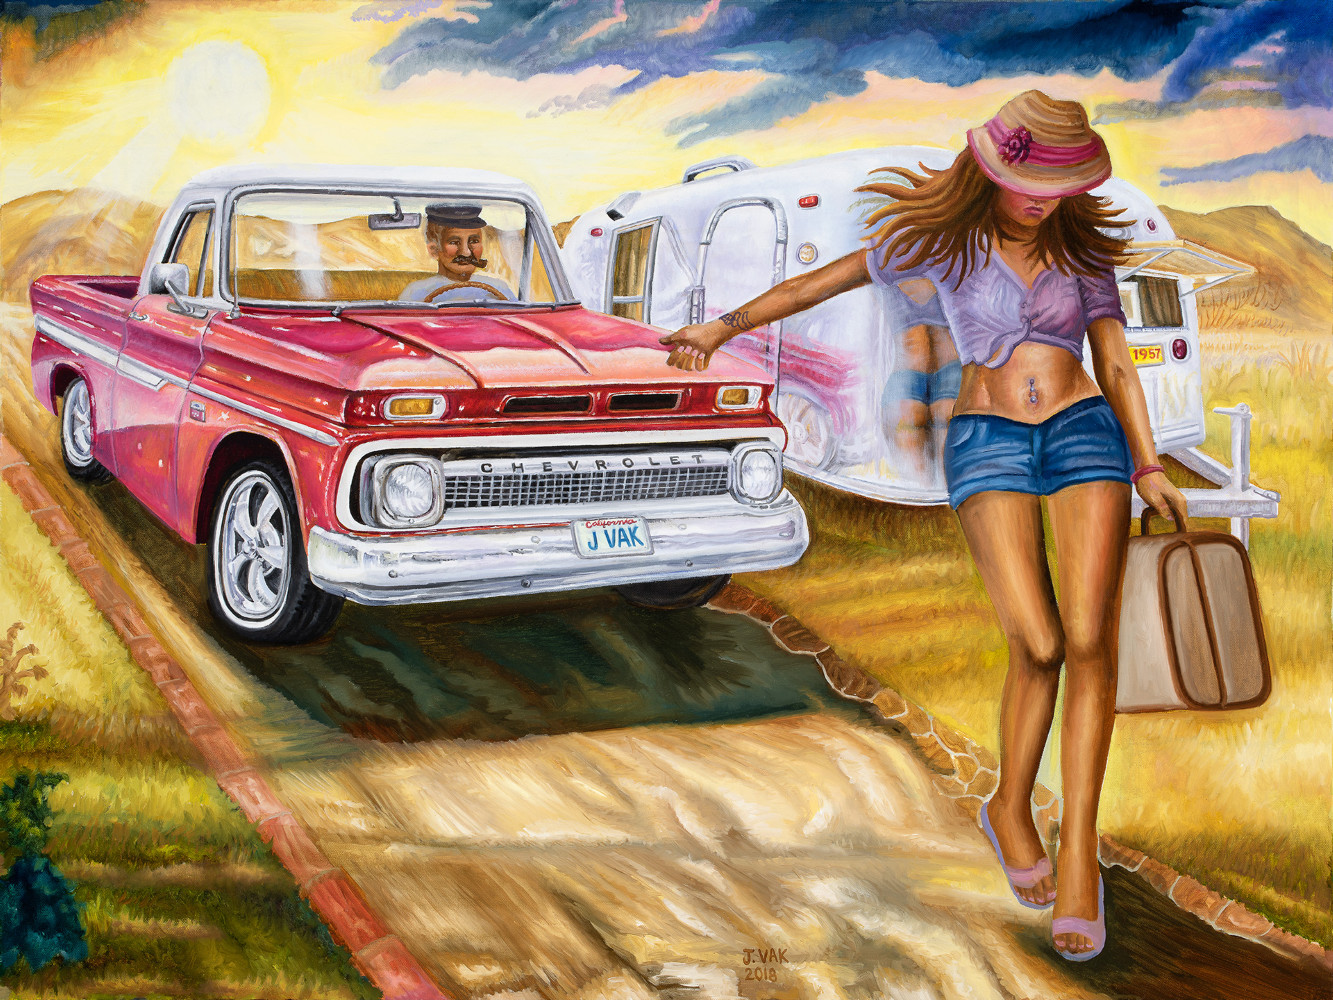 1966 Chevy Pickup with Hitchhiker       30 X 40 Oil on Canvas                  $2500                    2018